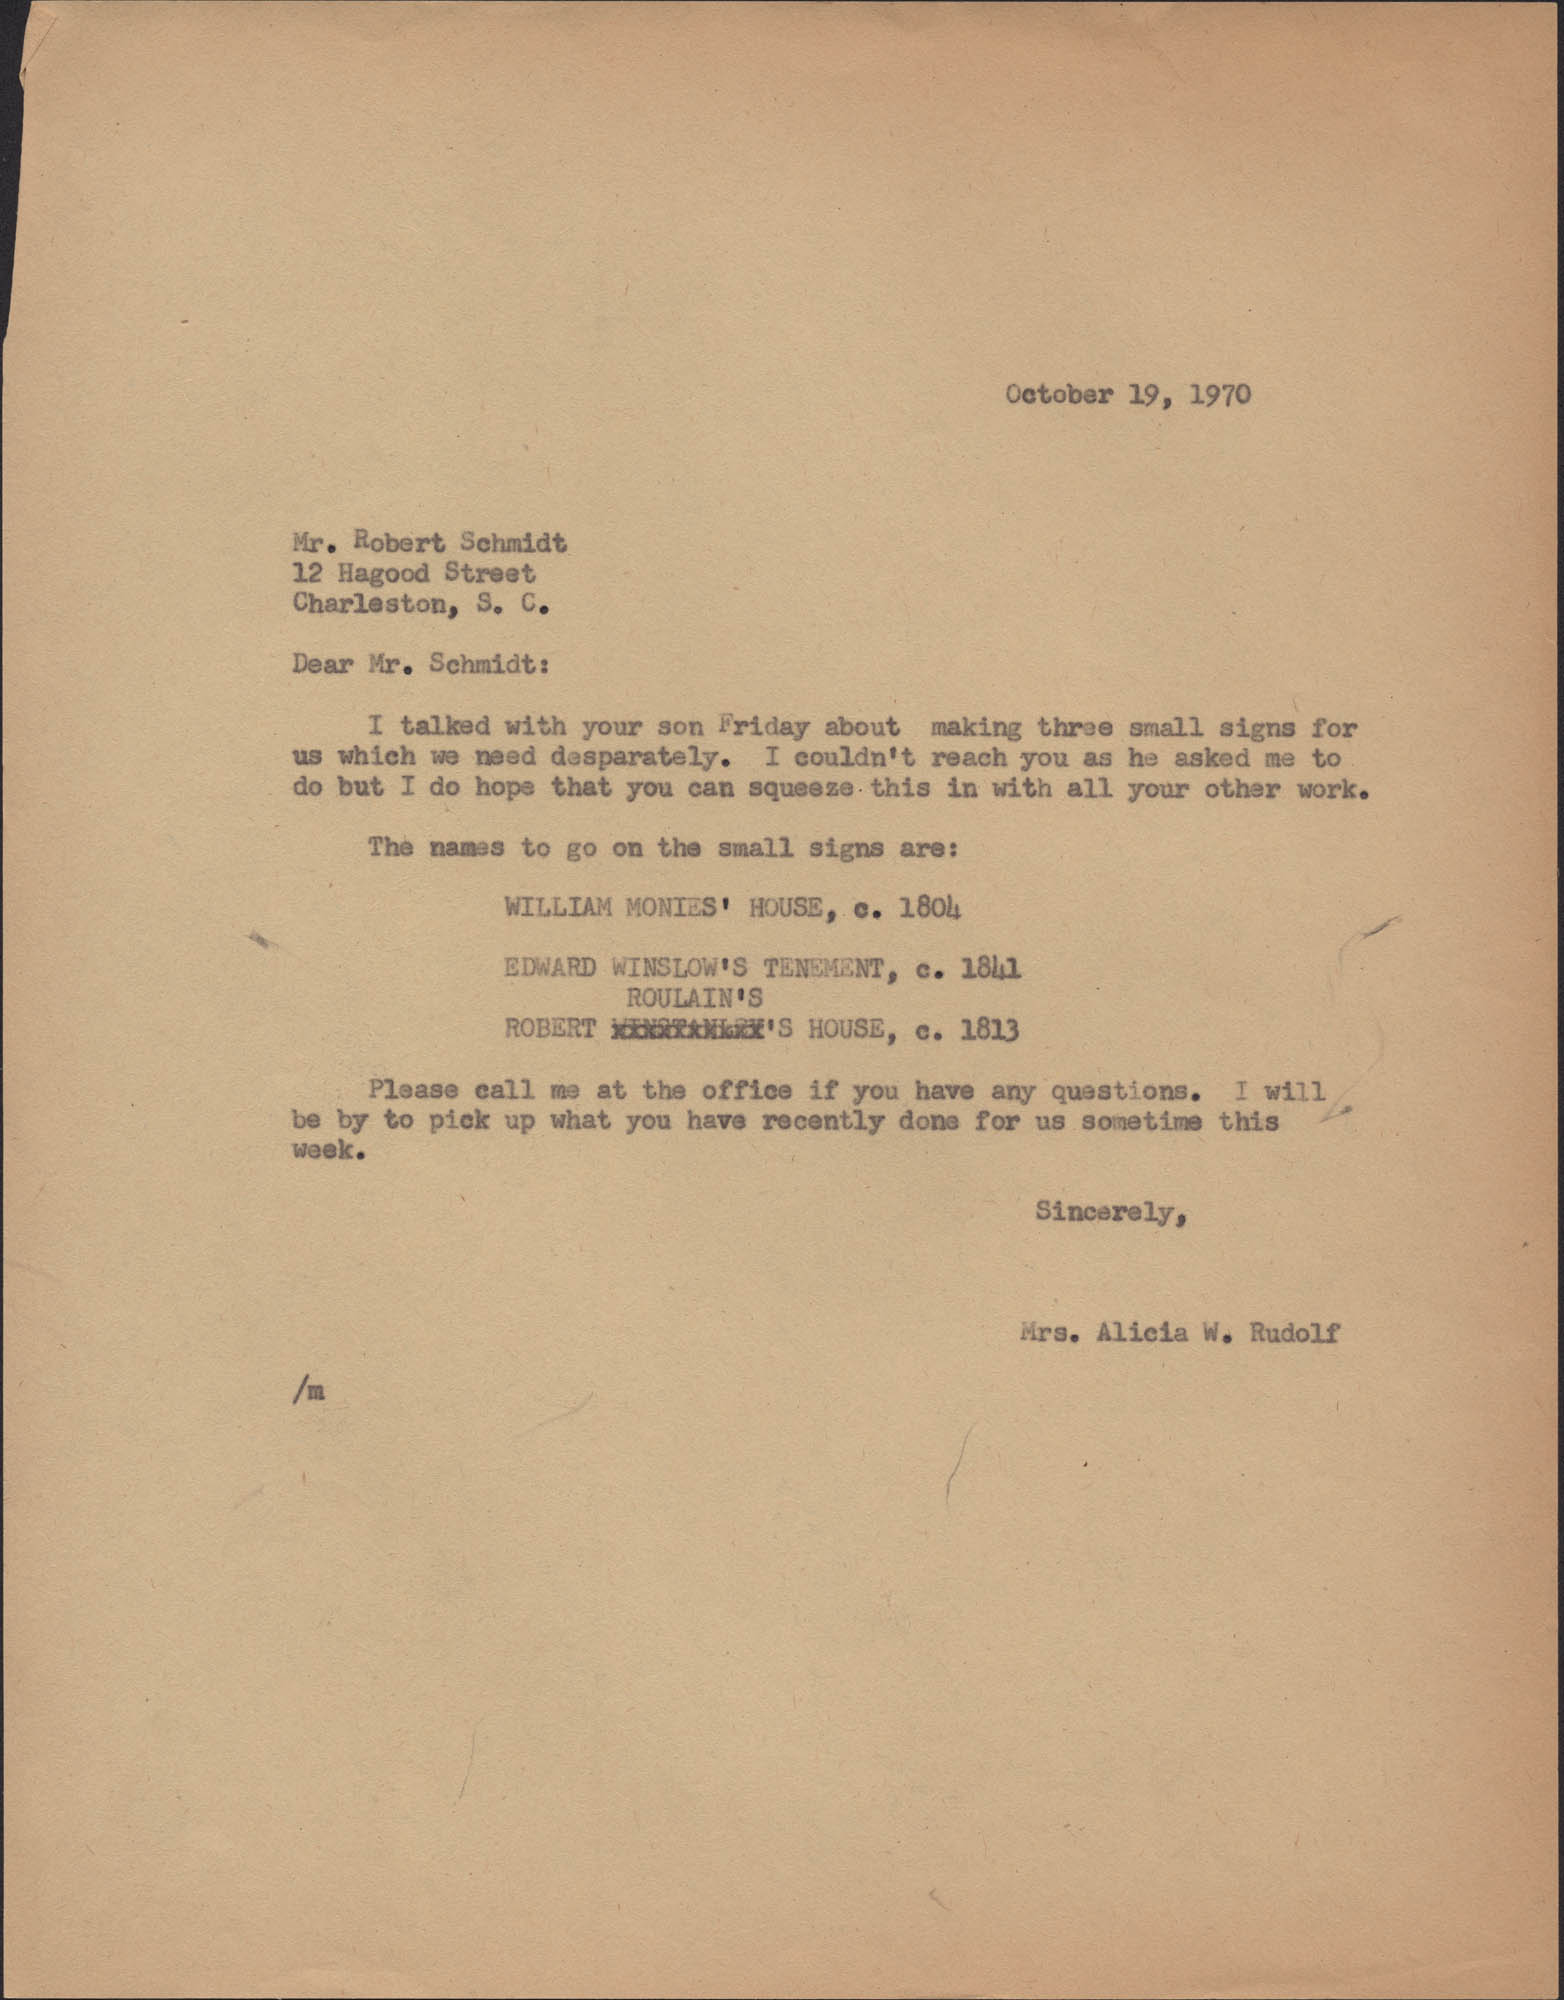 Letter from Alicia W. Rudolf to Robert Schmidt